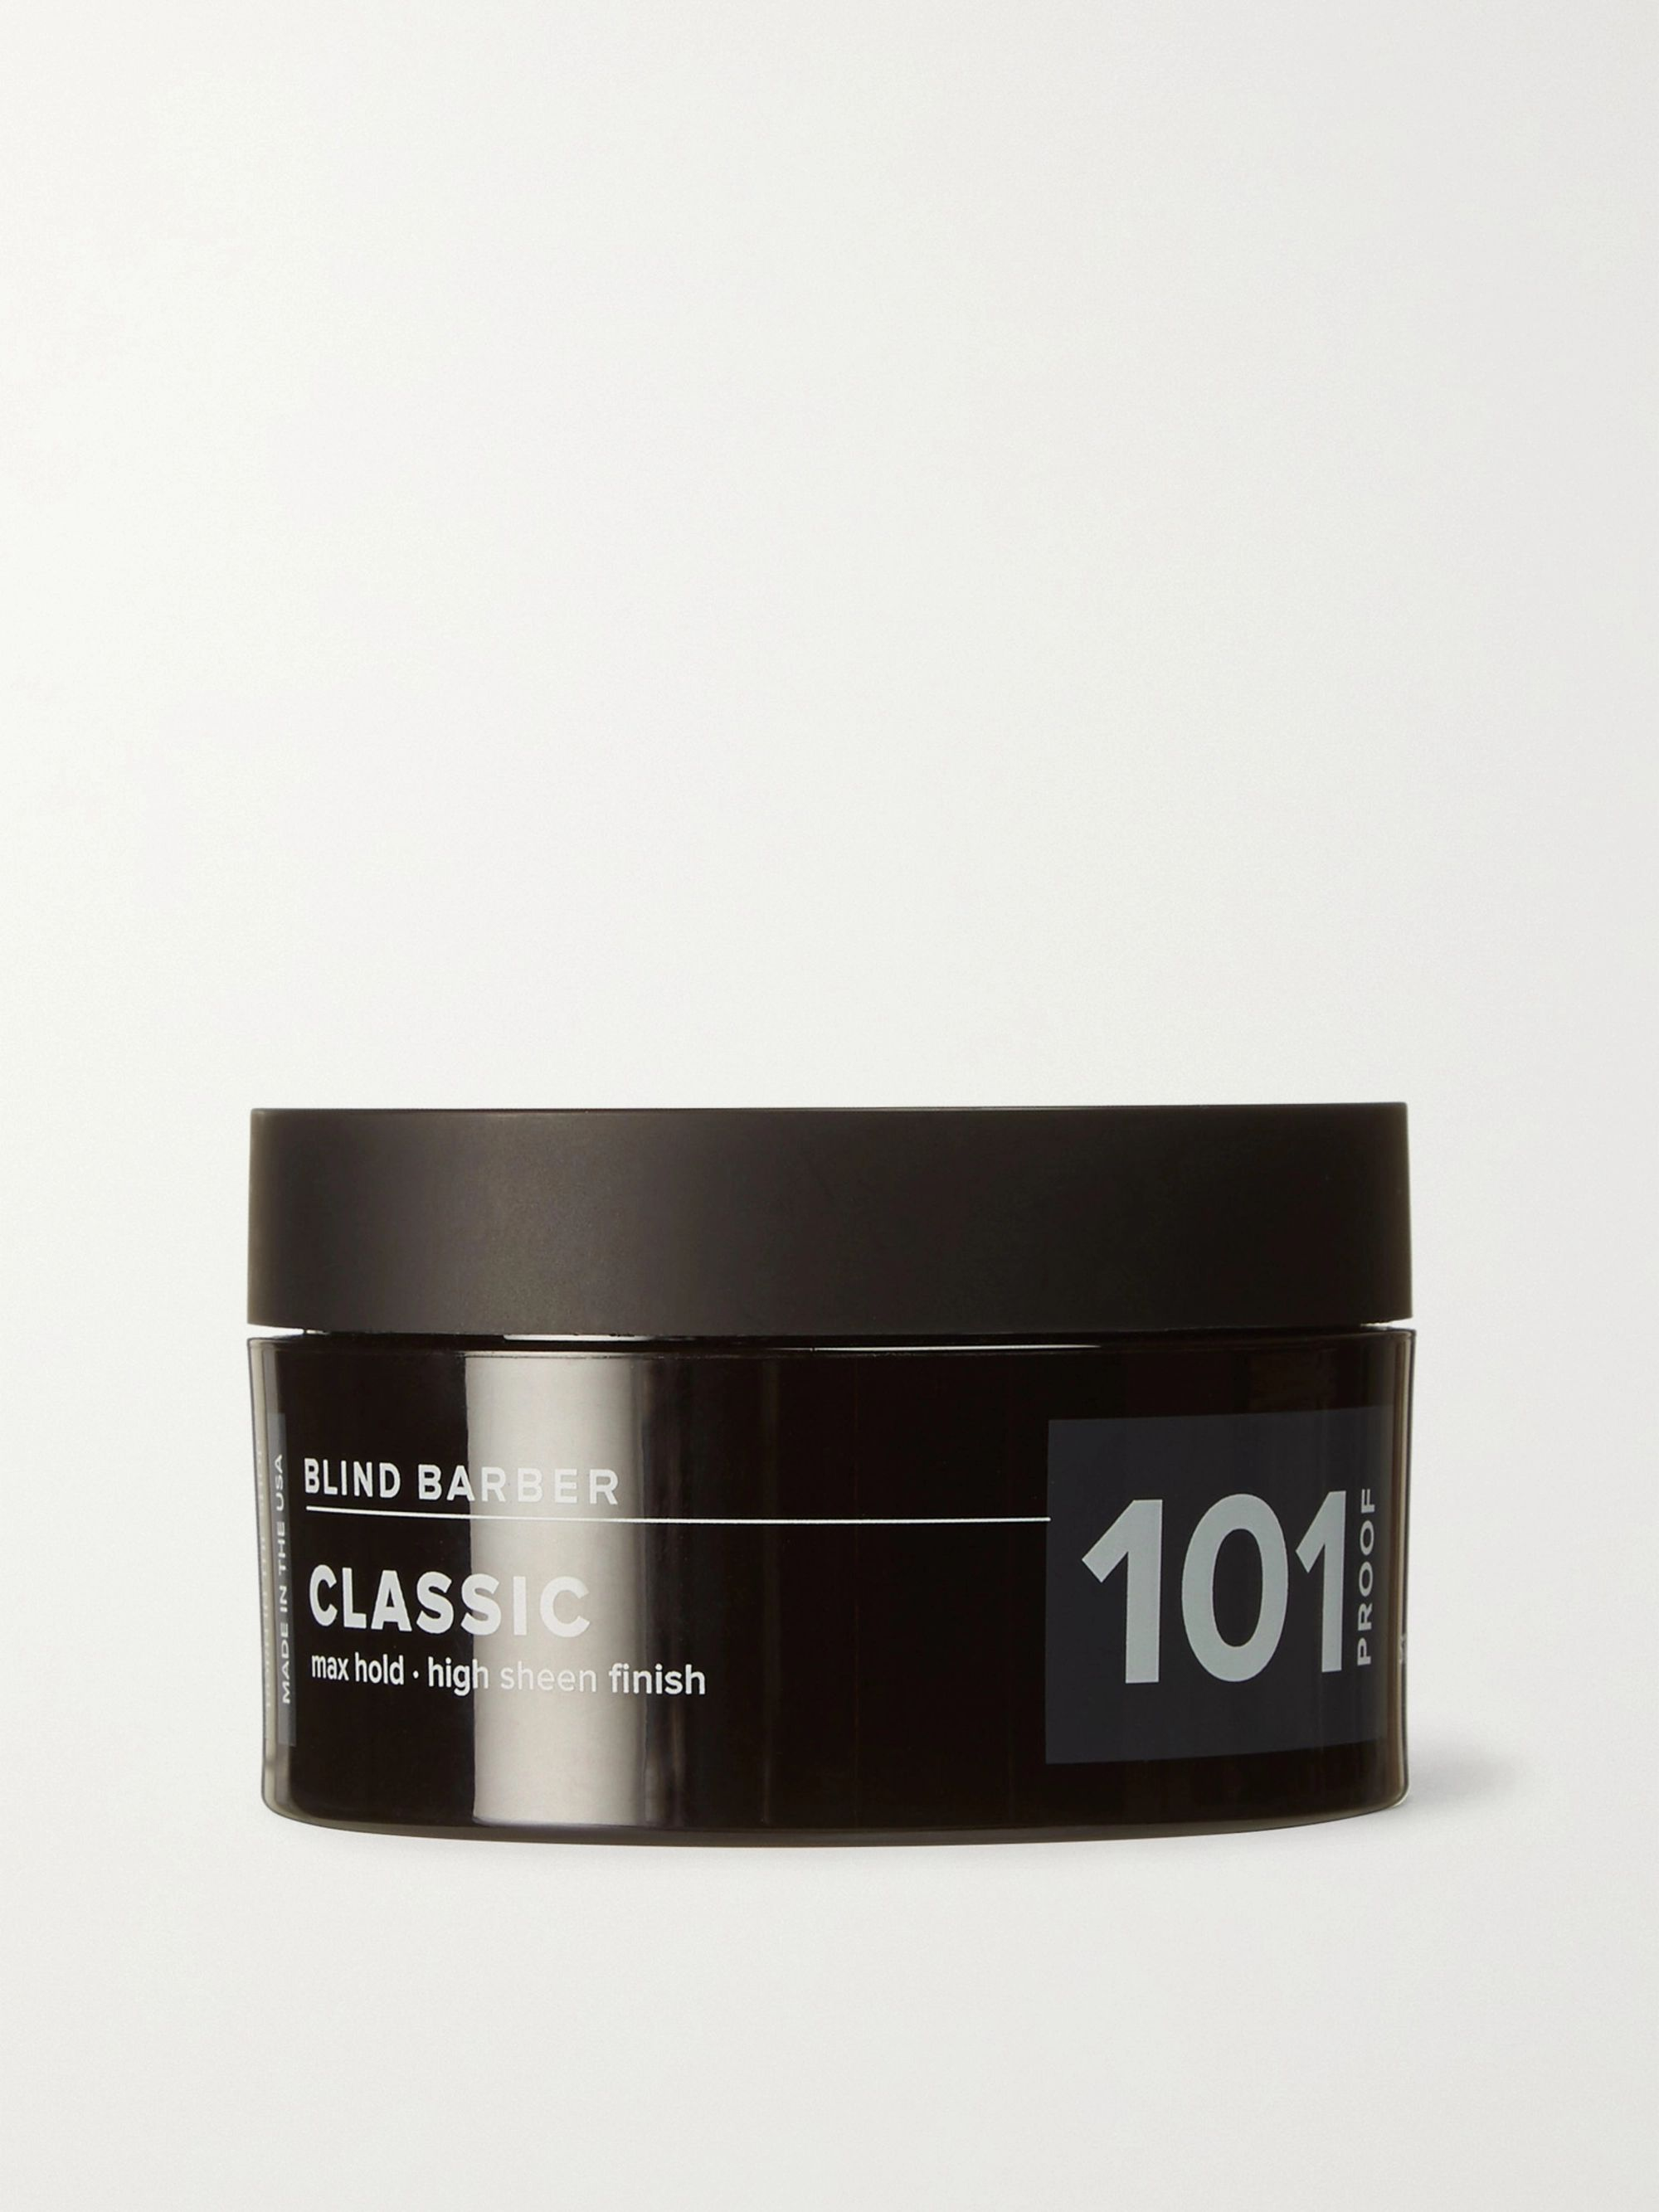 Blind Barber 101 Proof Classic Pomade, 75ml